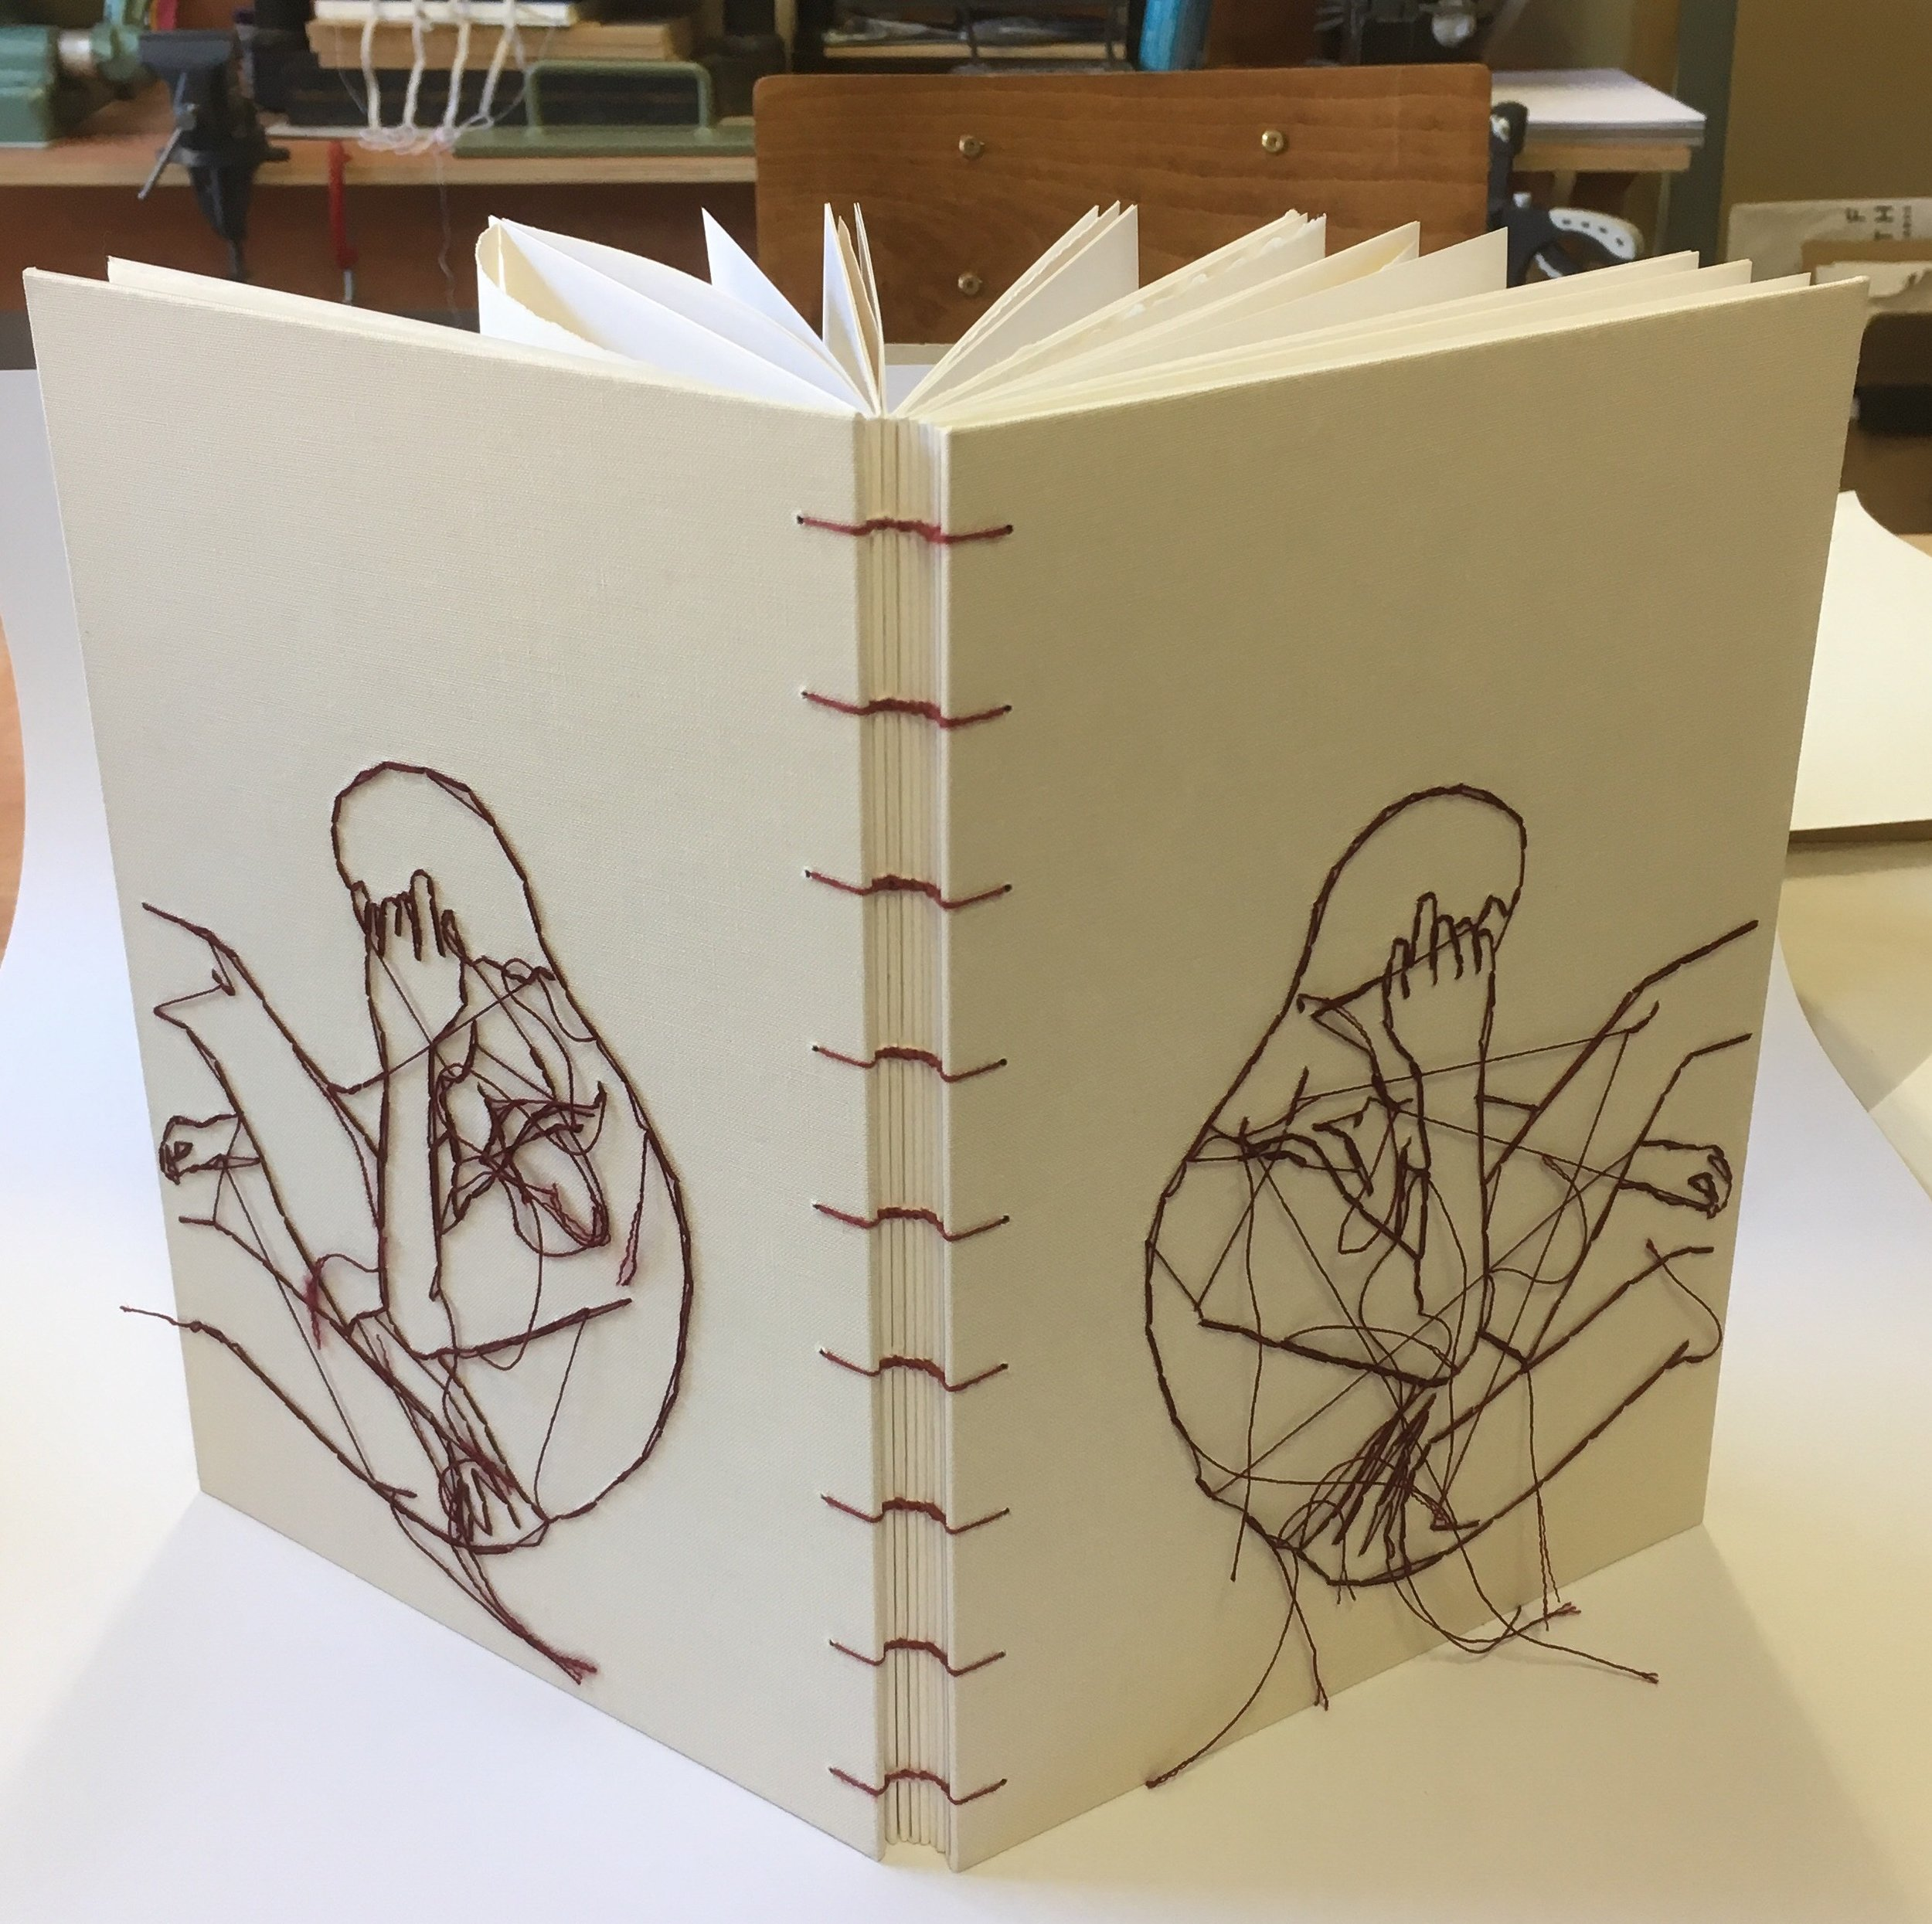 - The project involved creating a coptic binding (link stitch) with burgundy thread and using a bookcloth covering material that he was going to embroidered for the covers.Here is the bespoke book when finished.